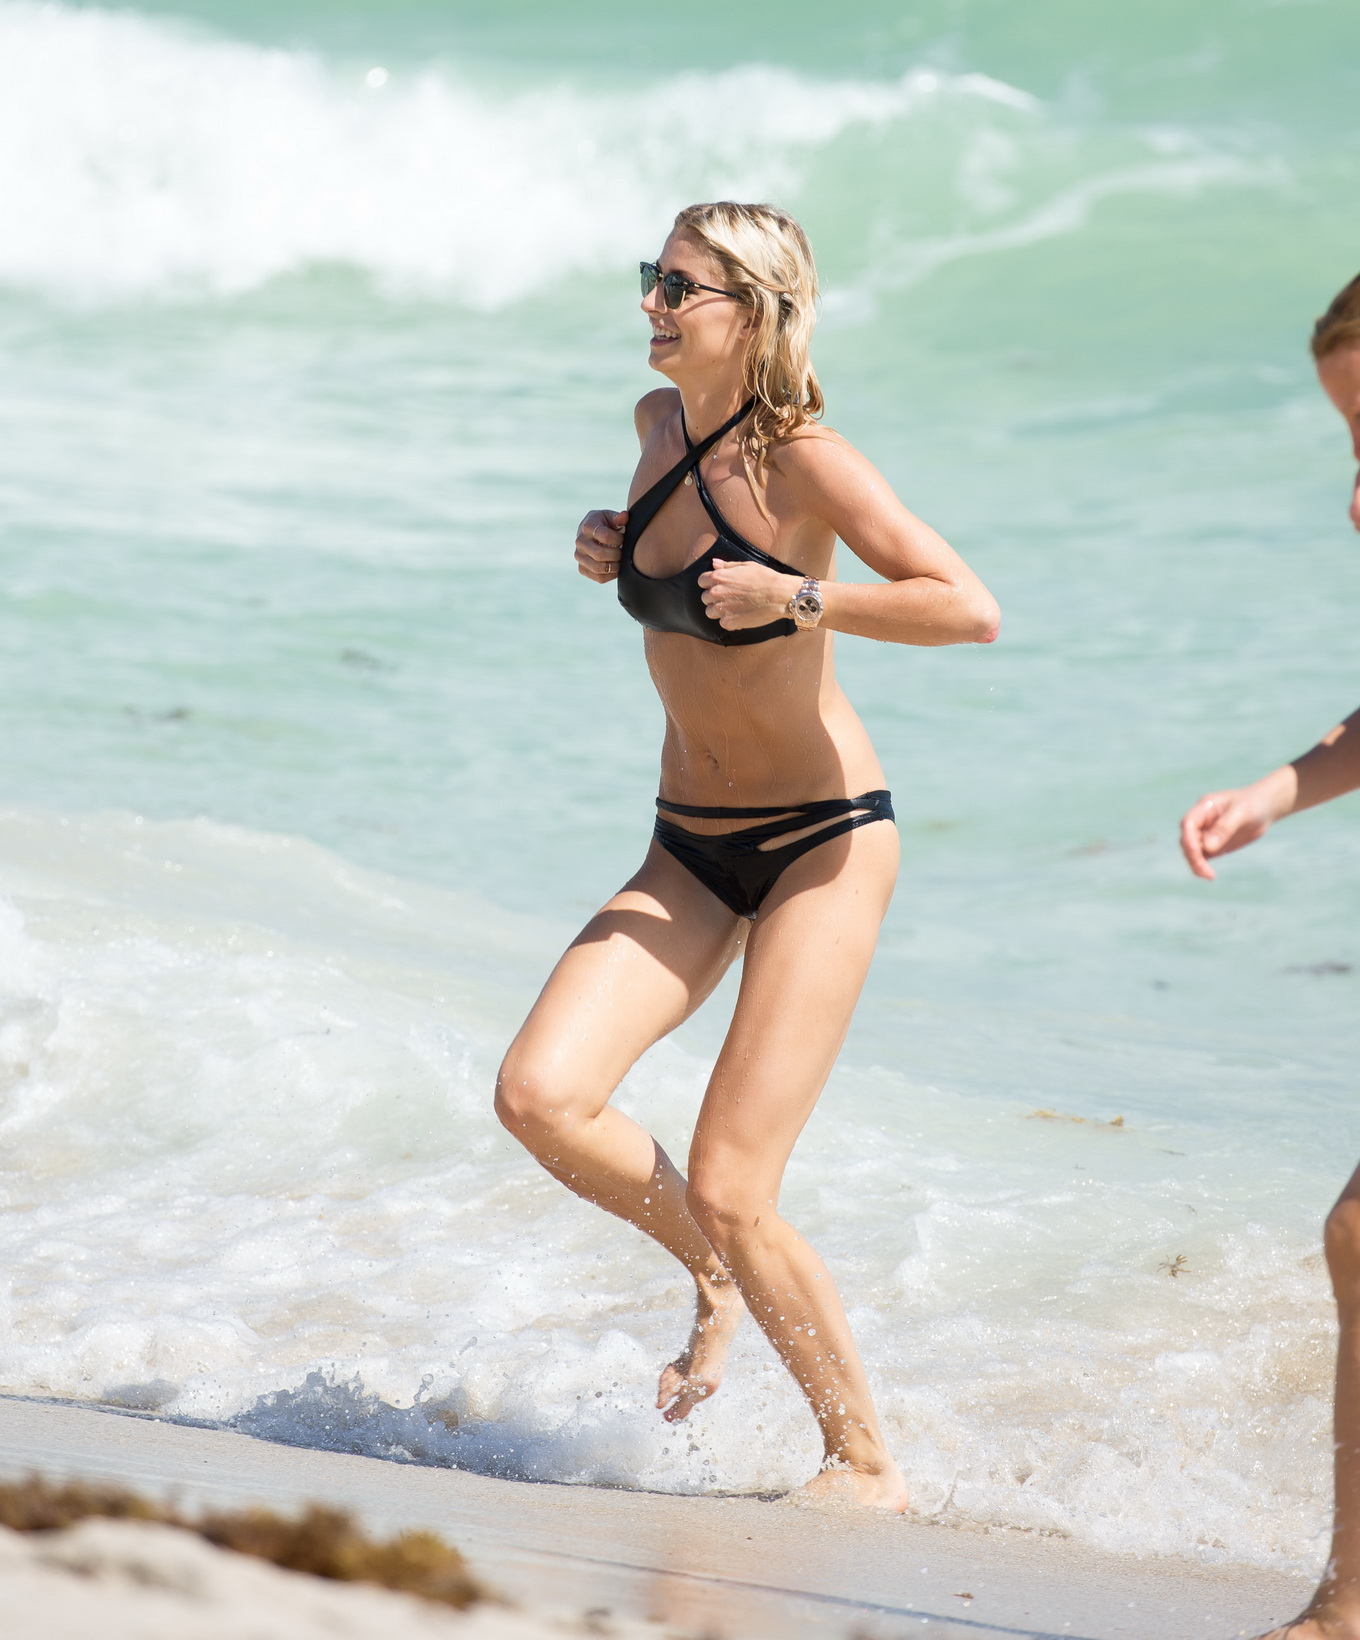 showing off her hot body in skimpy black bikini at the beach in miami